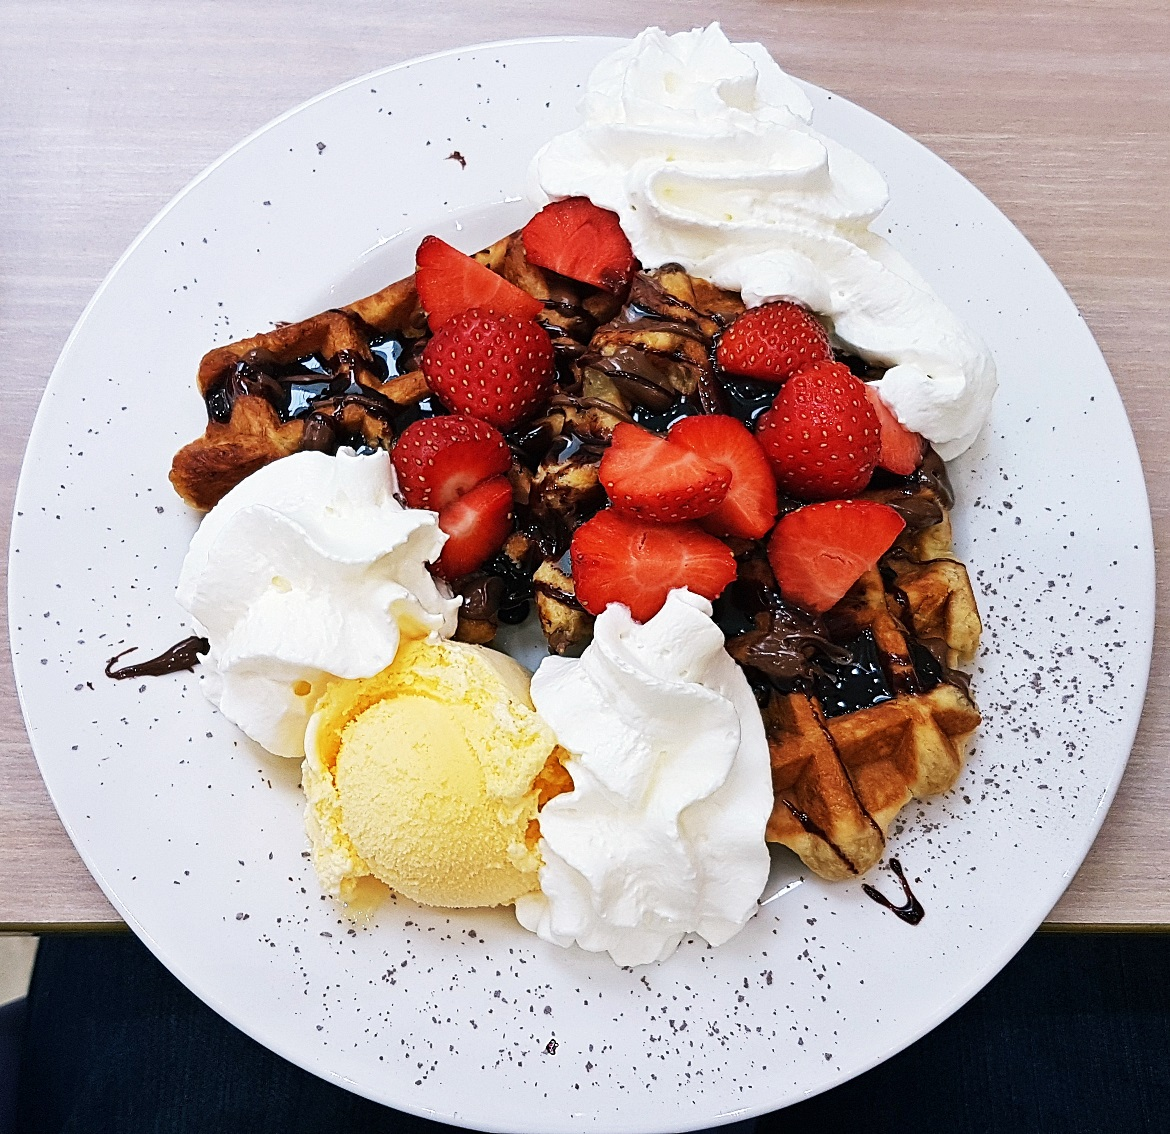 Waffle with Nutella and strawberries - Creams British Luxury Leeds Restaurant Review by BeckyBecky Blogs